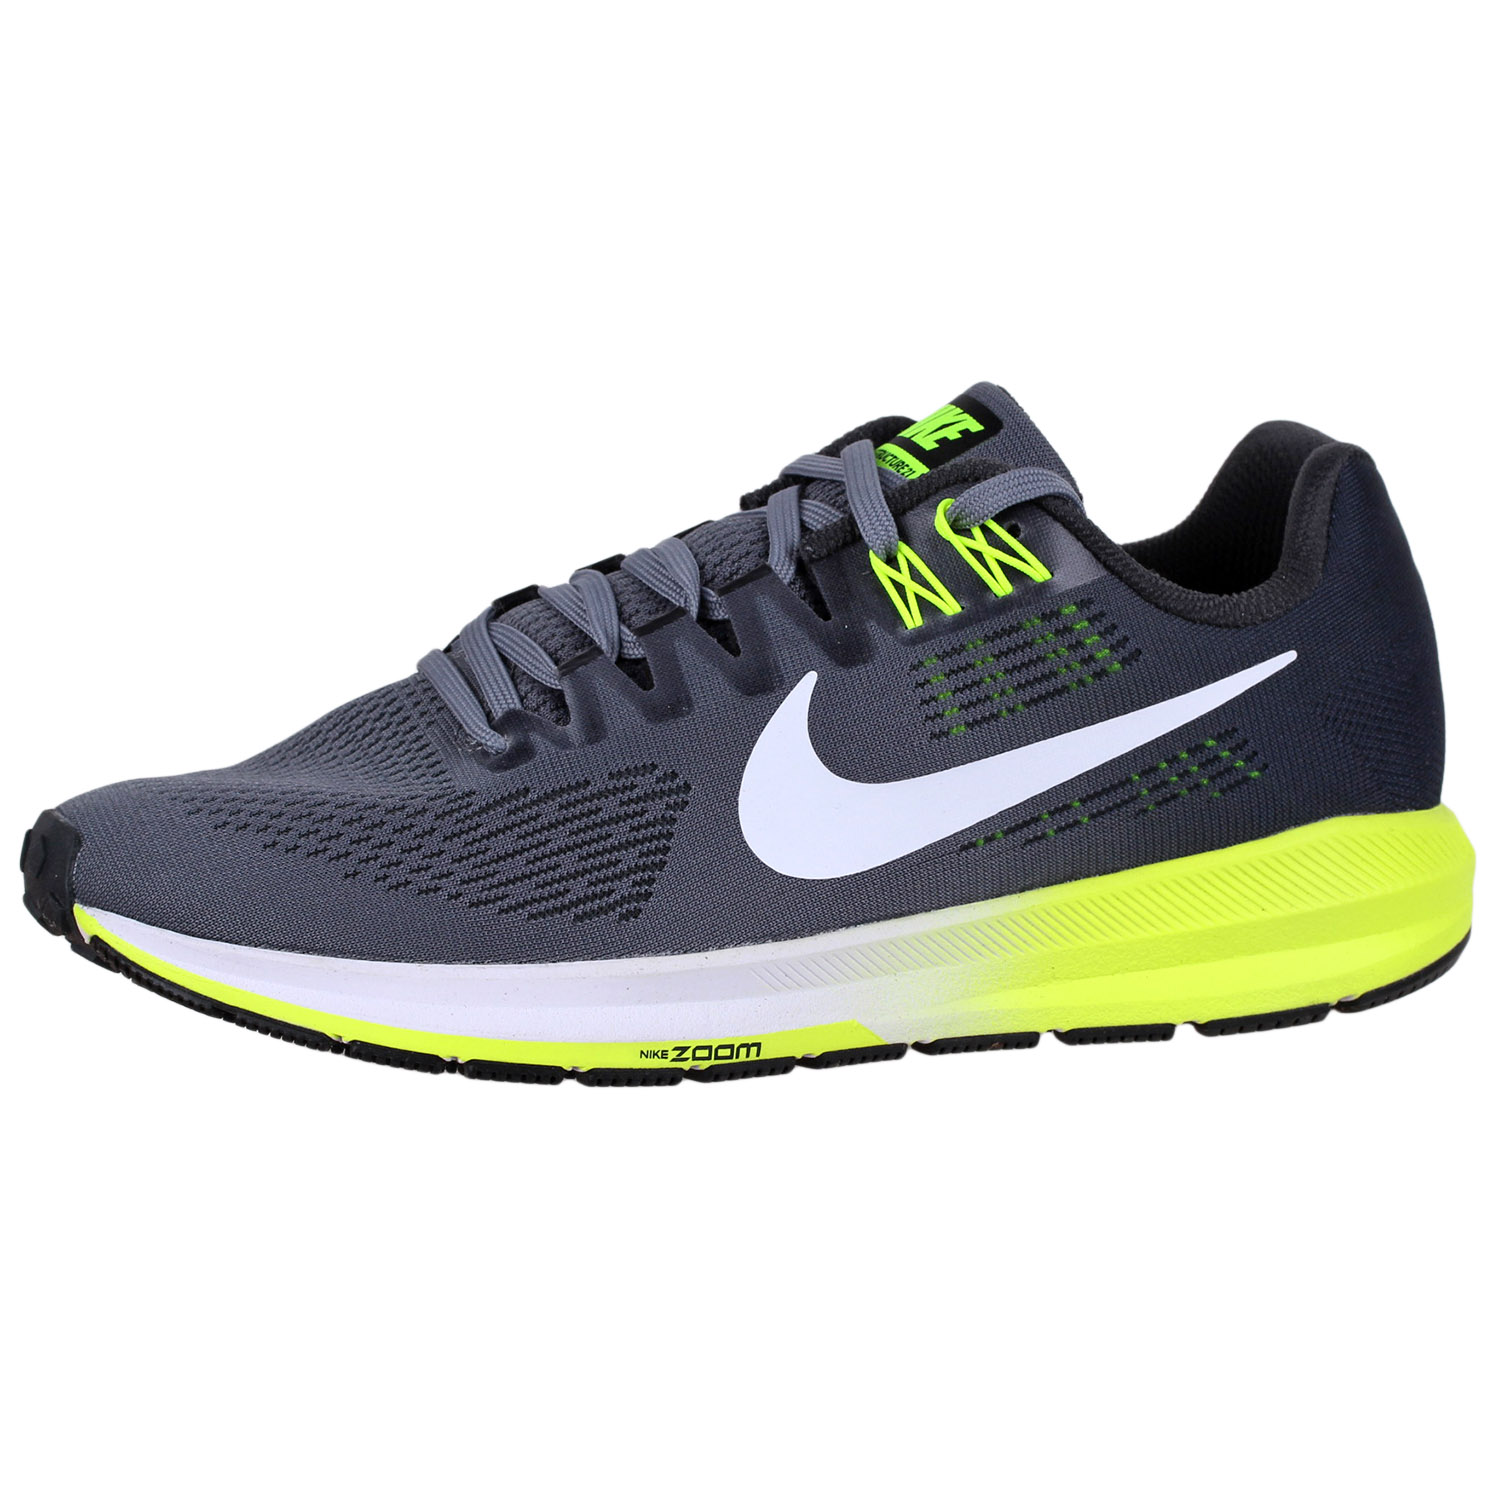 5a4fe9d5b5dc Details about Men s Nike Air Zoom Structure 21 Running Shoes 904695 Grey 8